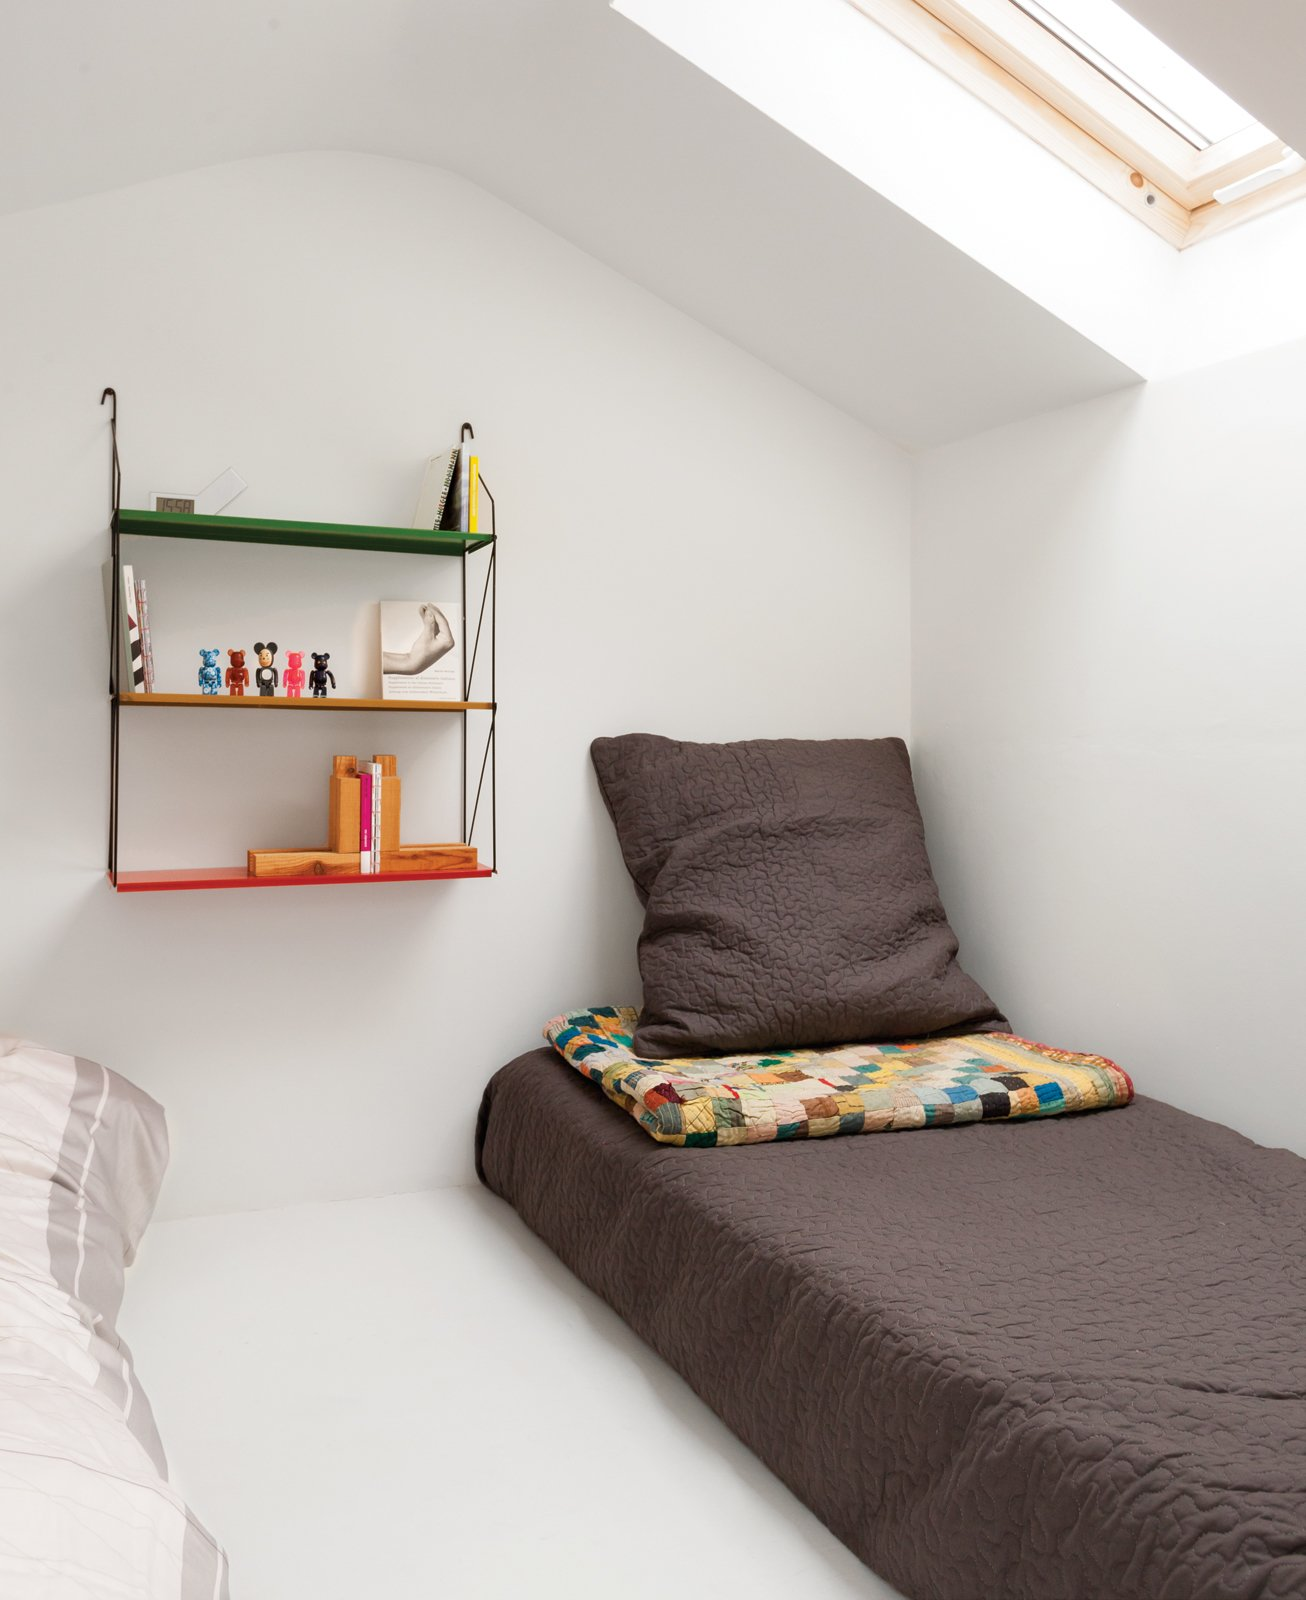 A colorful shelf offers bedside storage in a London guesthouse.  Shelves